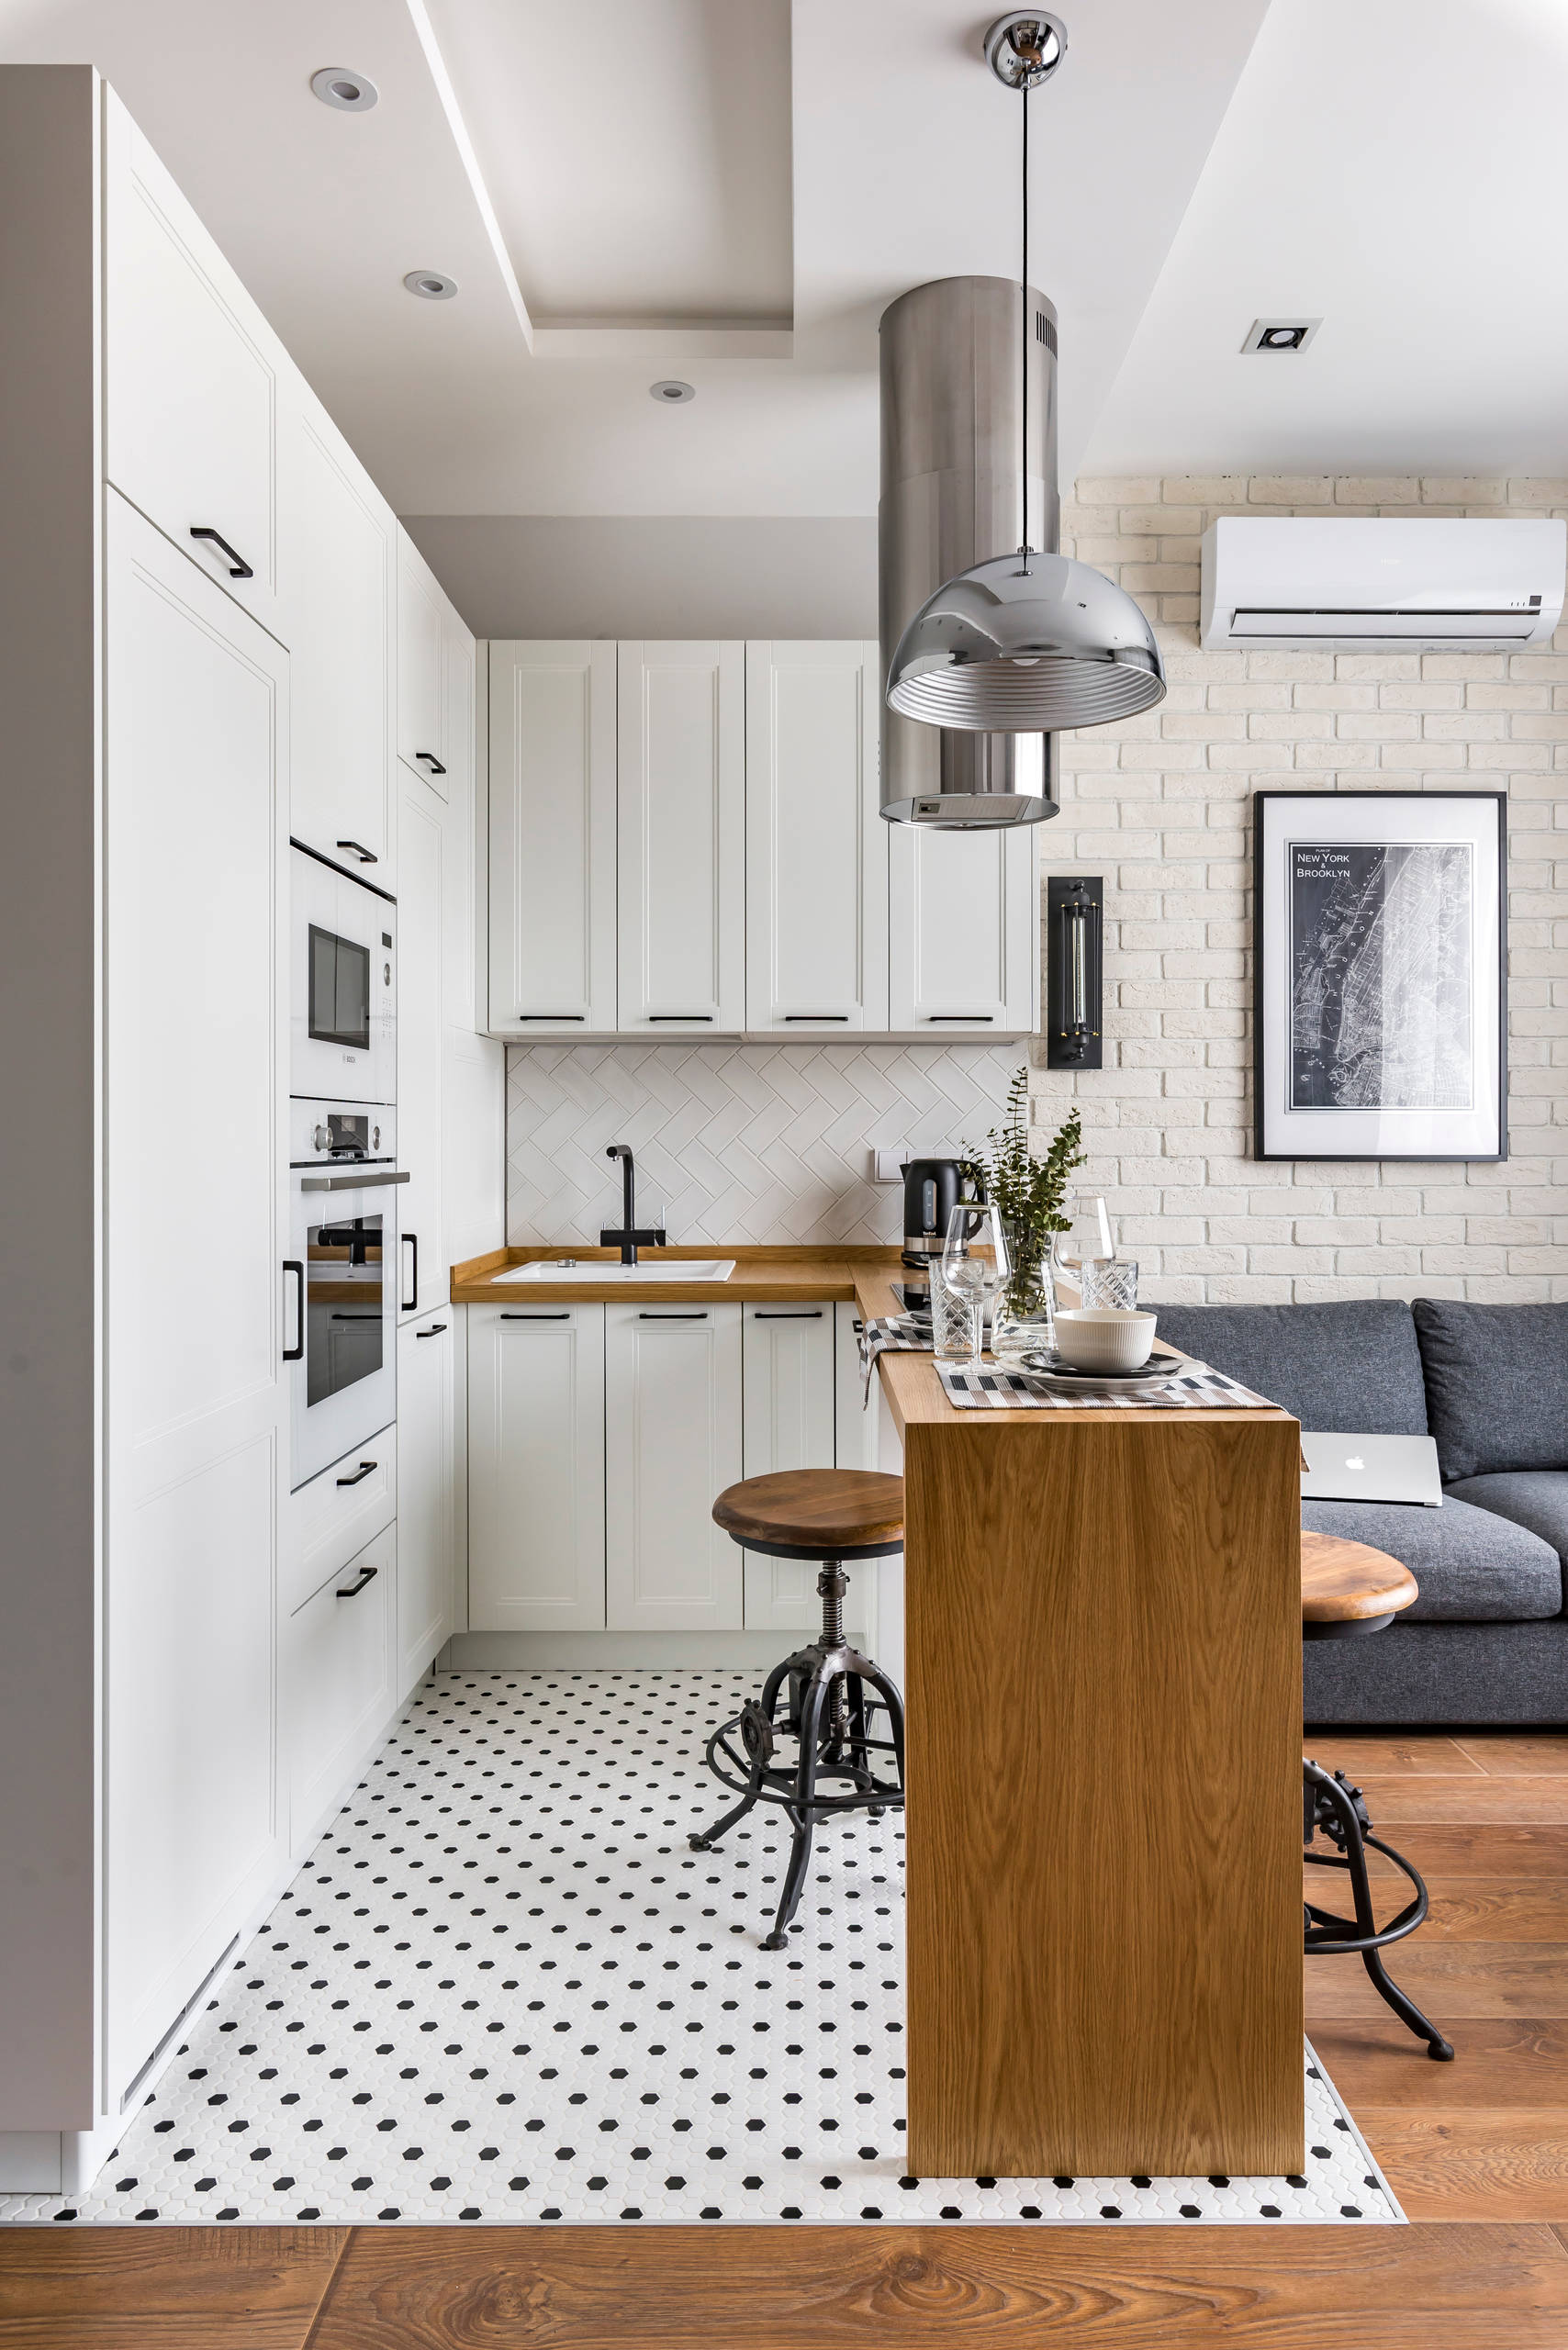 75 Beautiful Small Open Concept Kitchen Pictures Ideas November 2020 Houzz